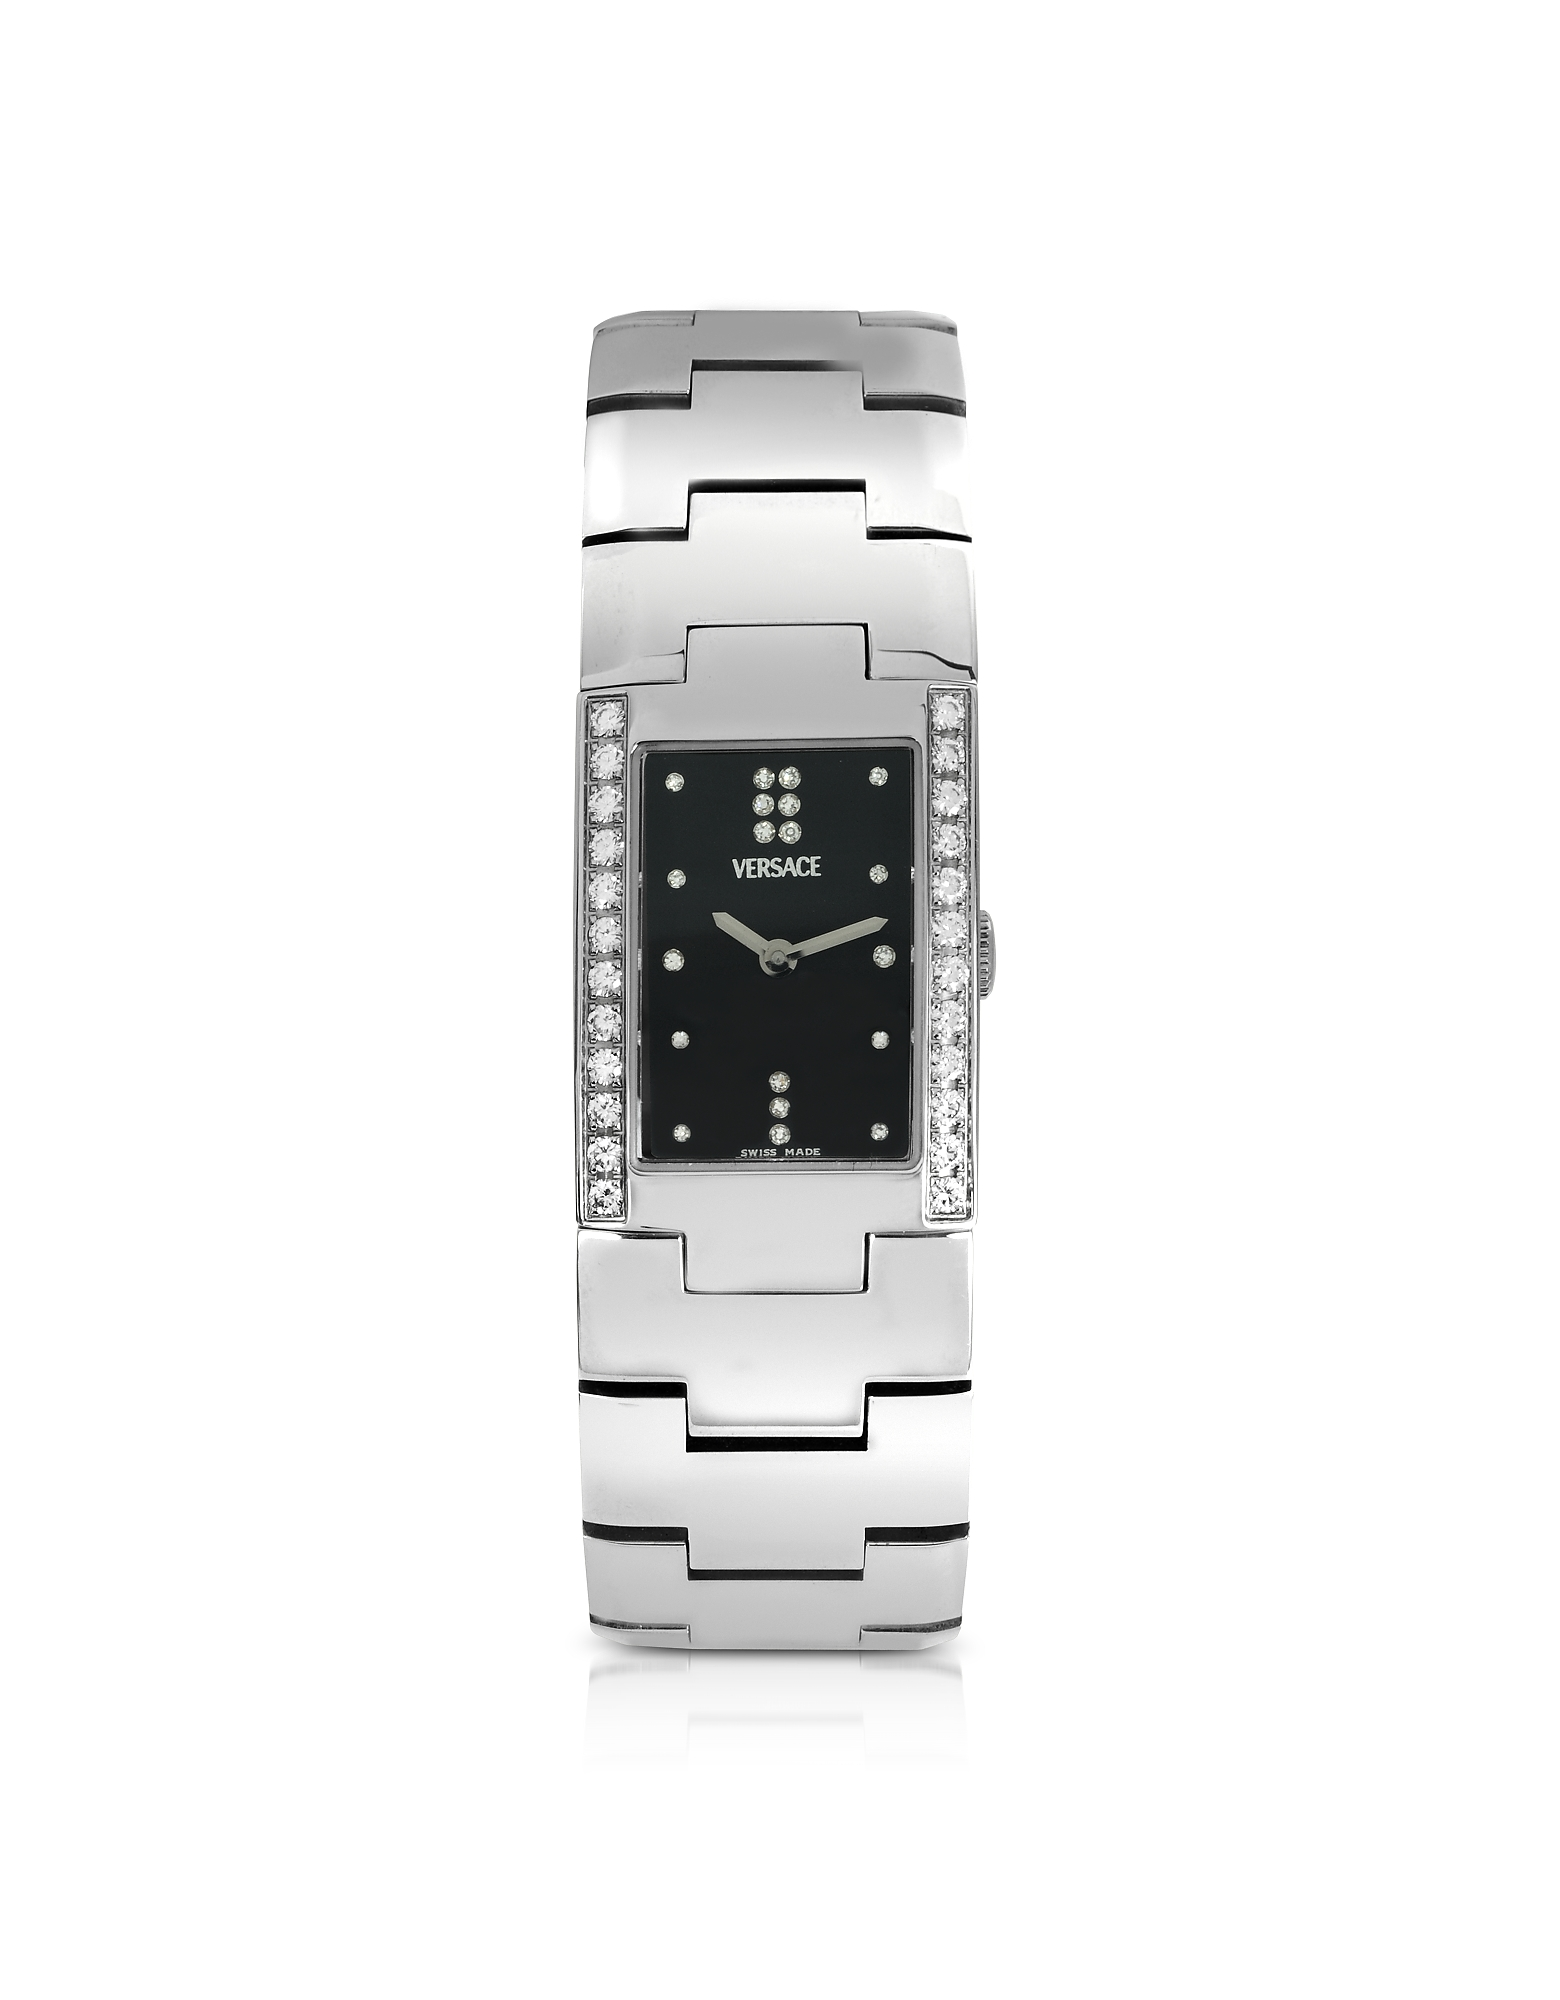 Greca - Ladies' Stainless Steel and Diamond Watch